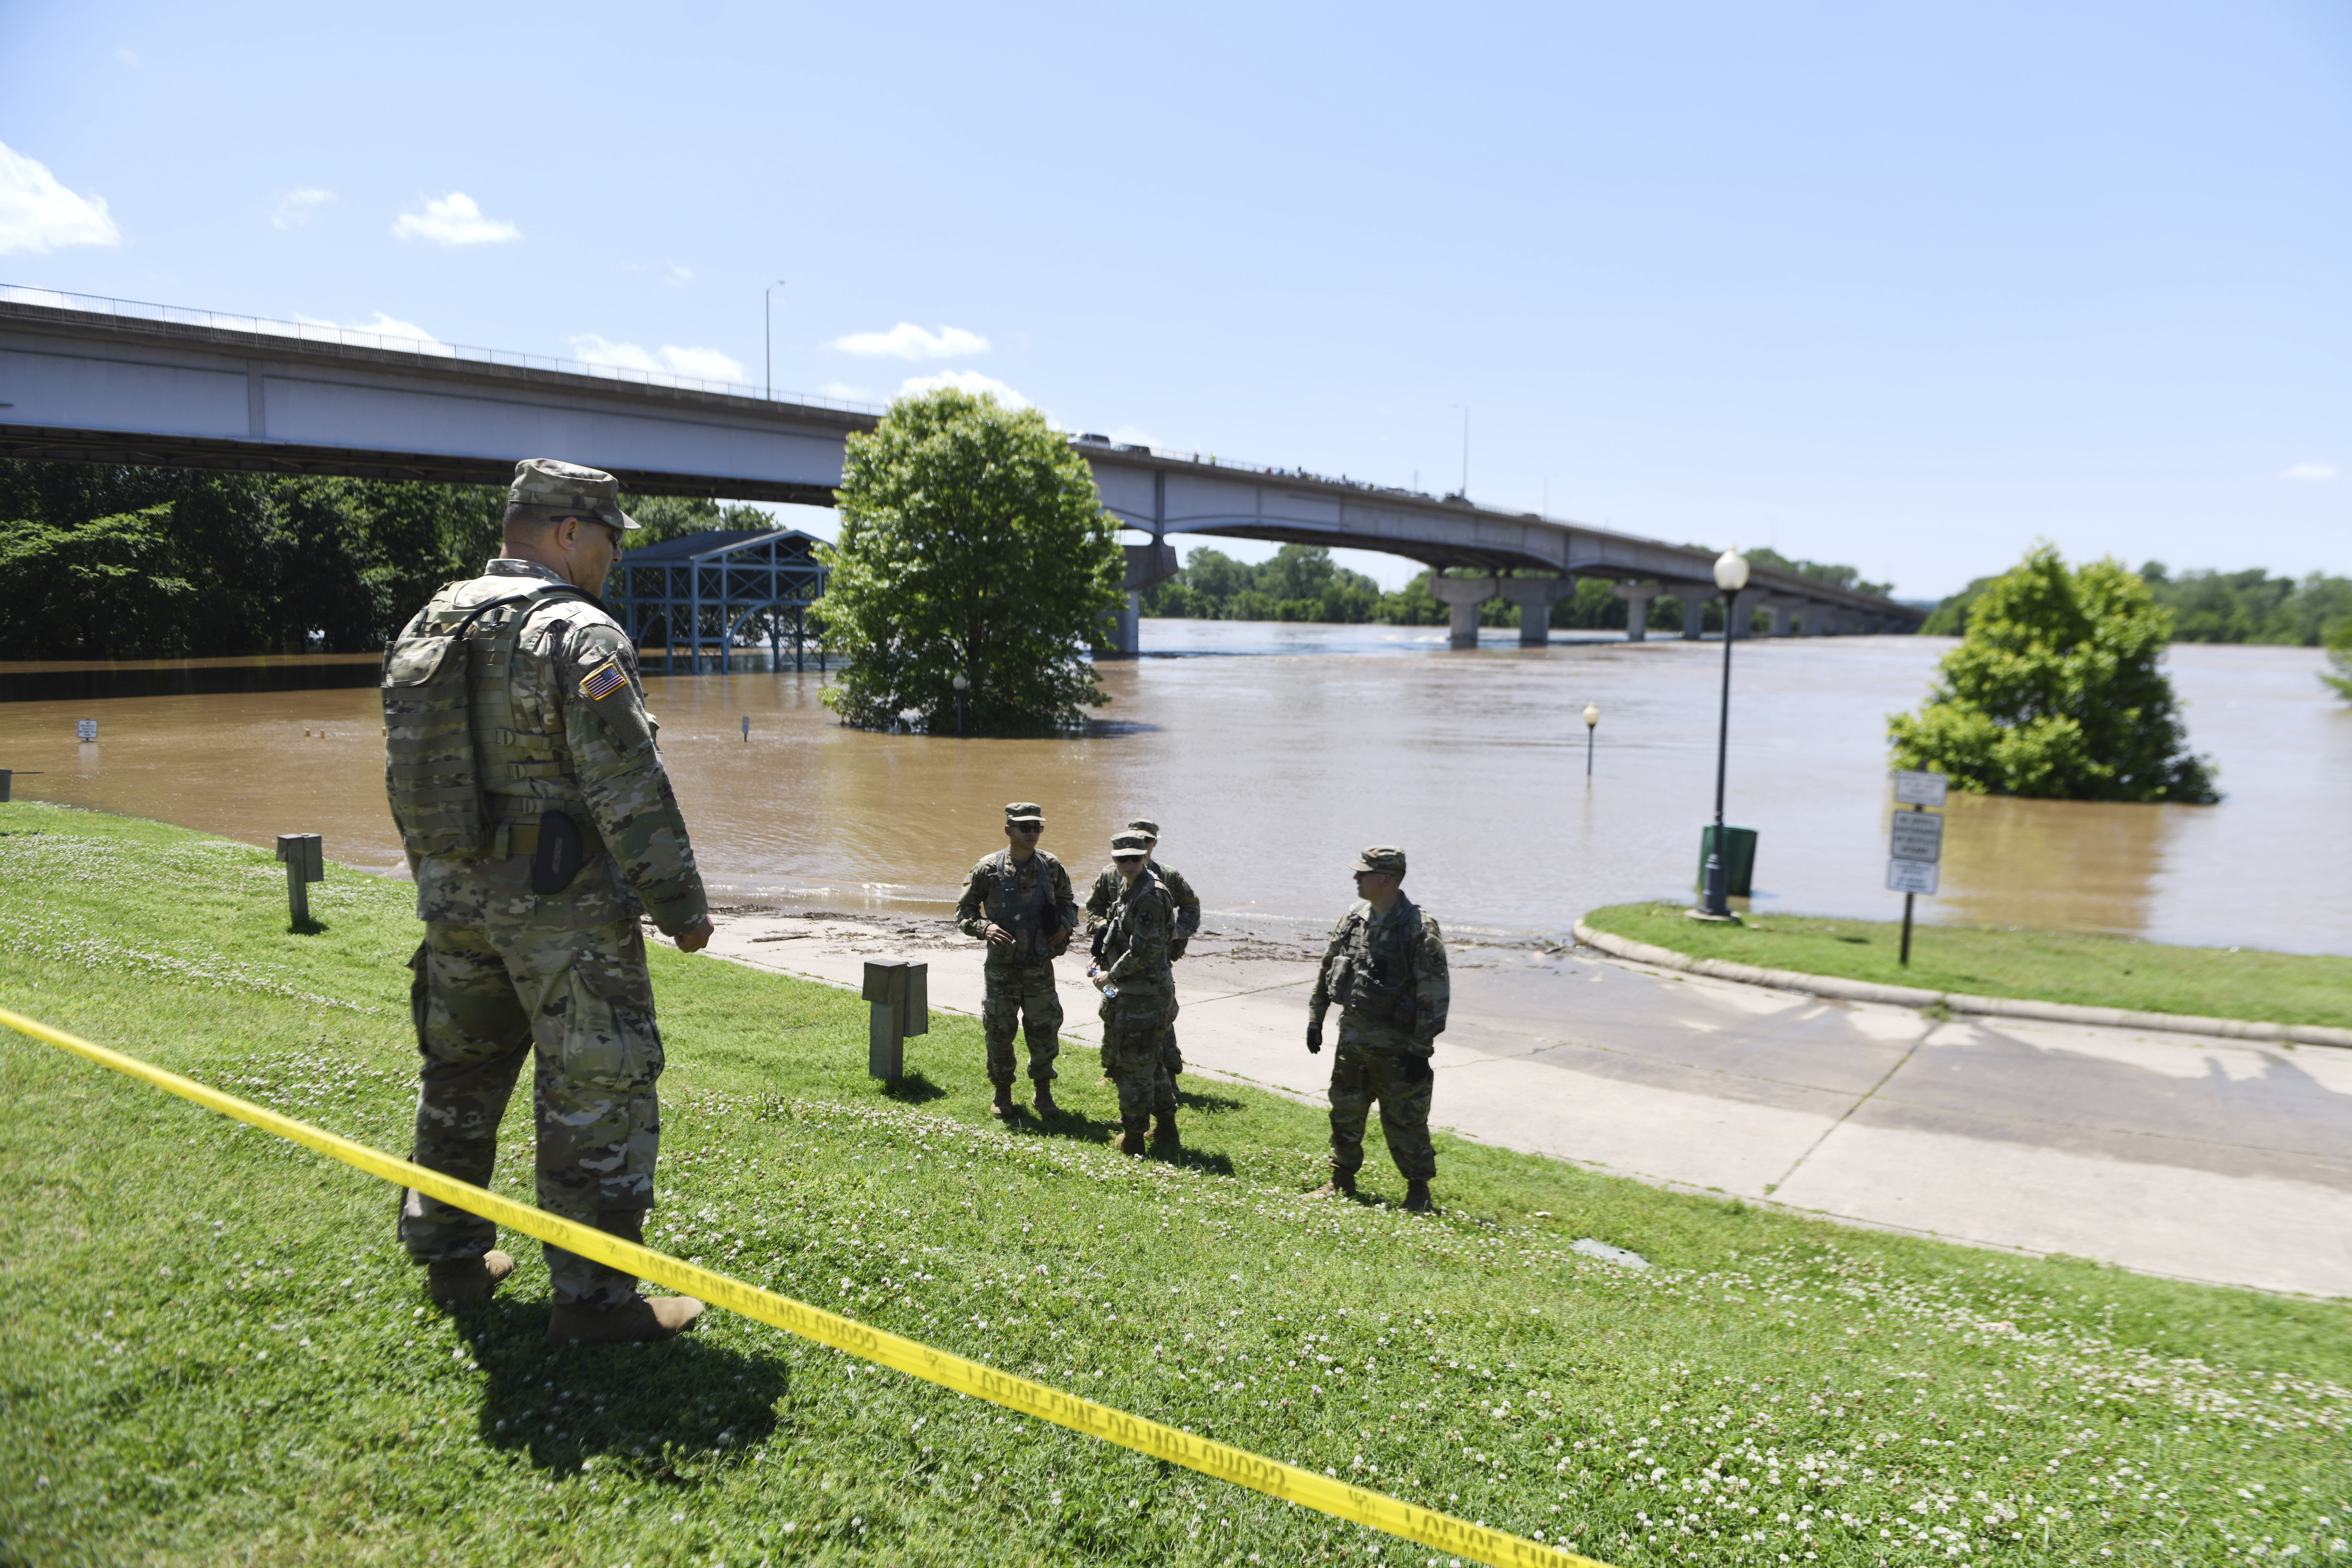 Levee breach in western Arkansas due to record flooding